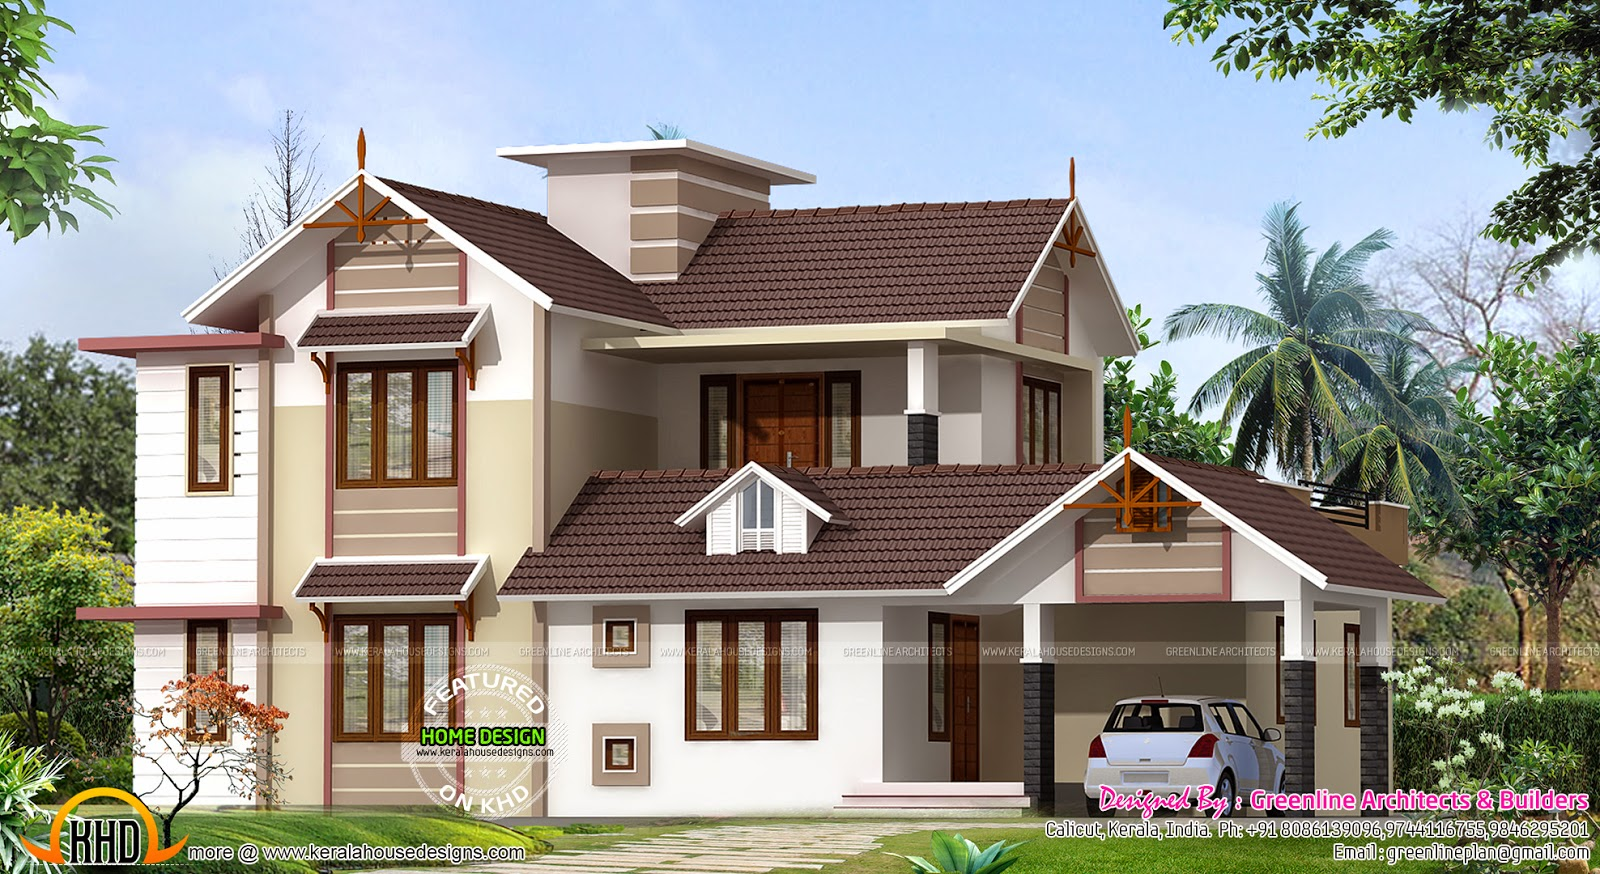 2400 sq ft new house design kerala home design and floor for New home designs floor plans